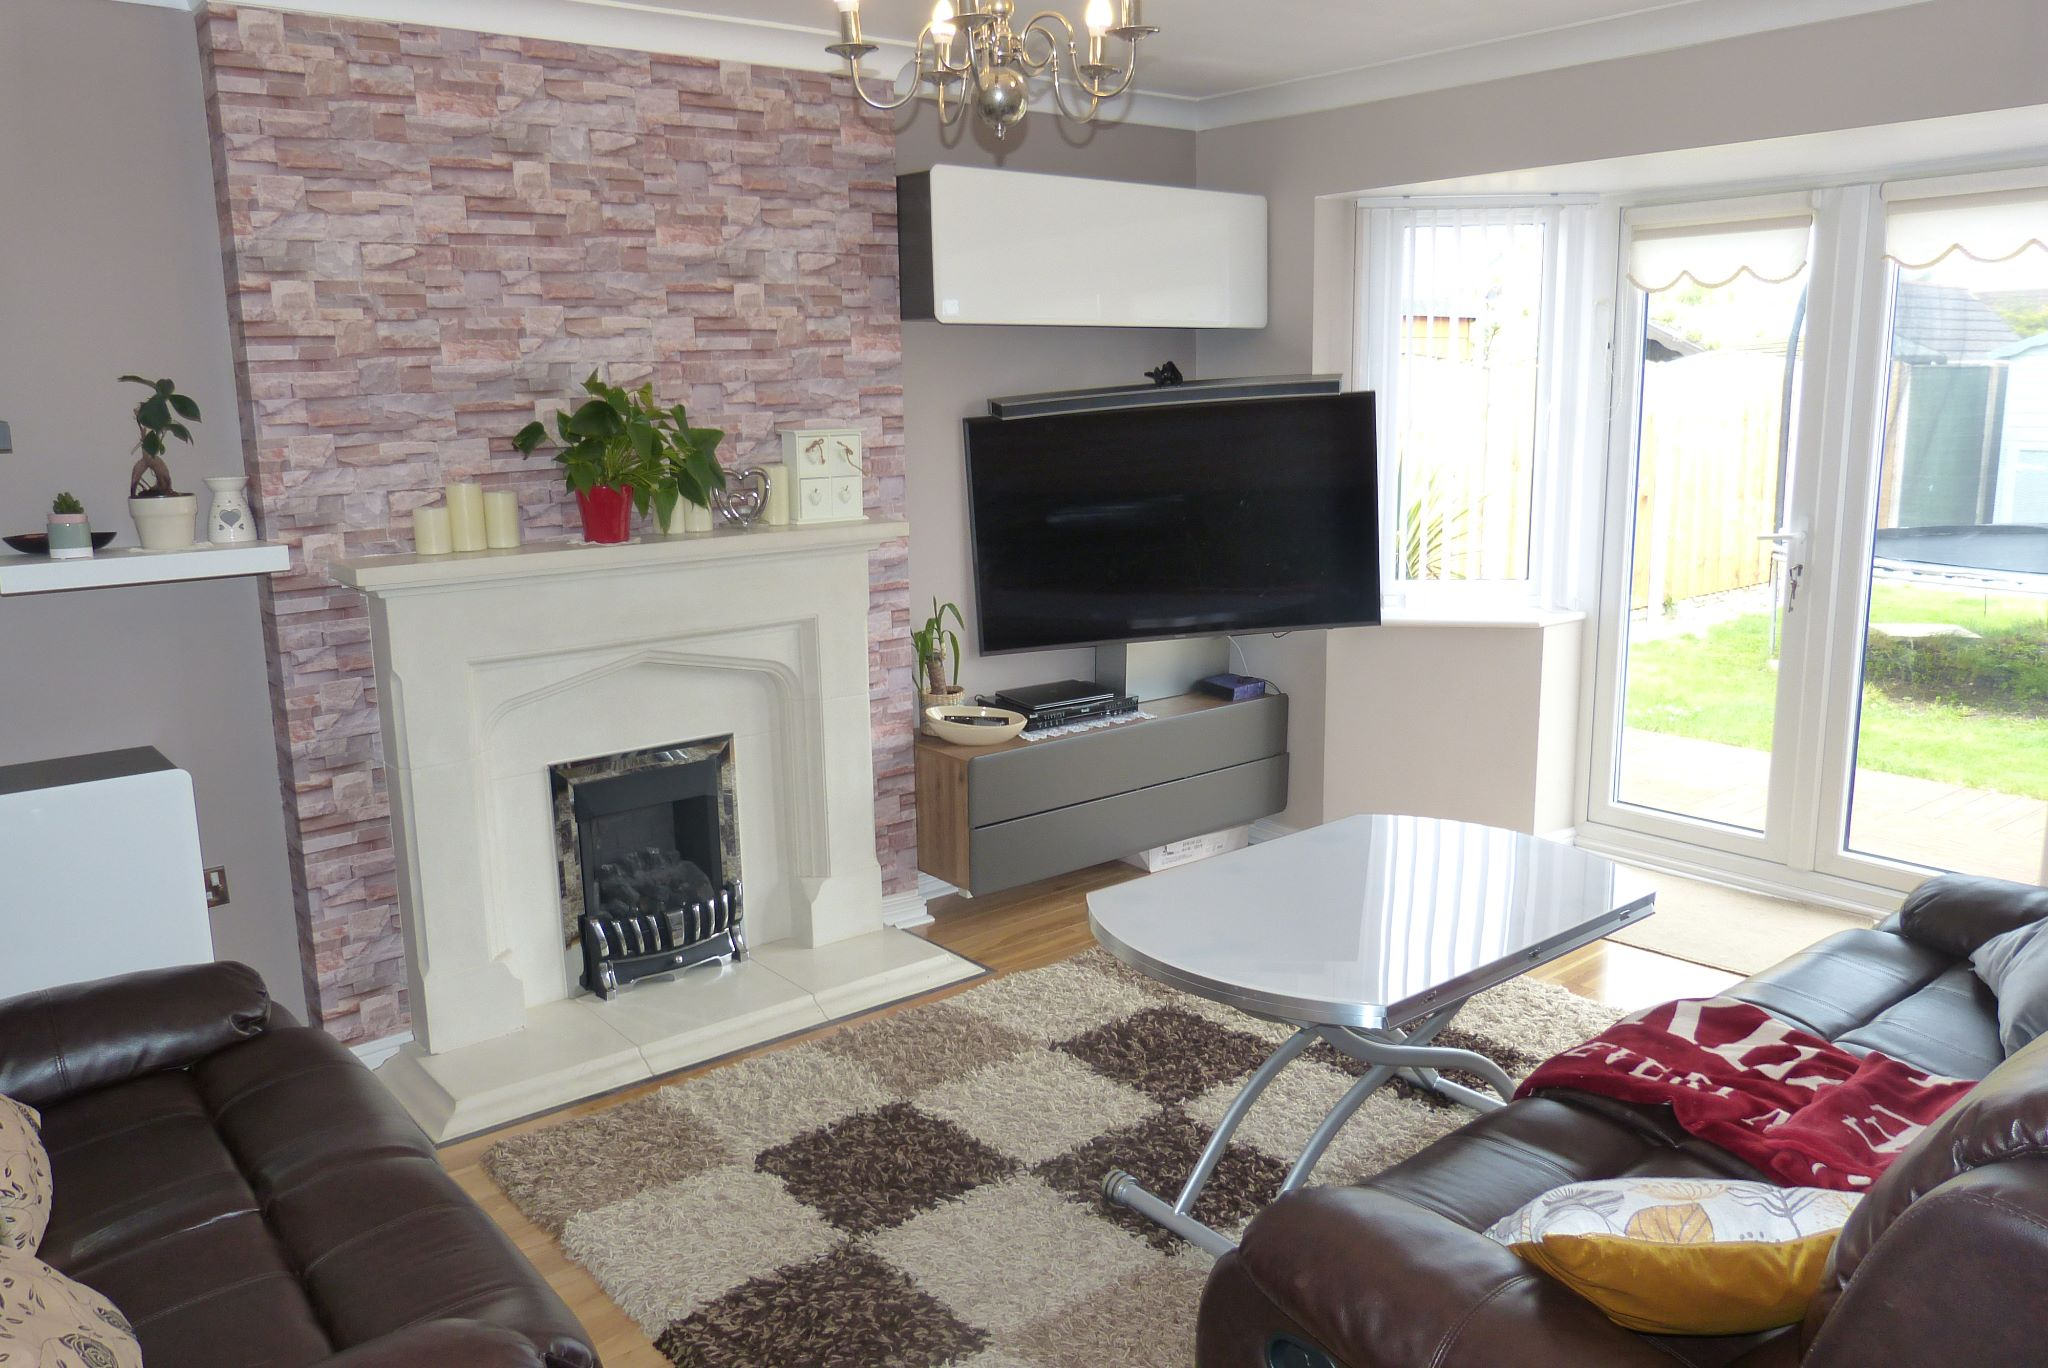 4 bedroom detached house SSTC in Abergele - Photograph 2